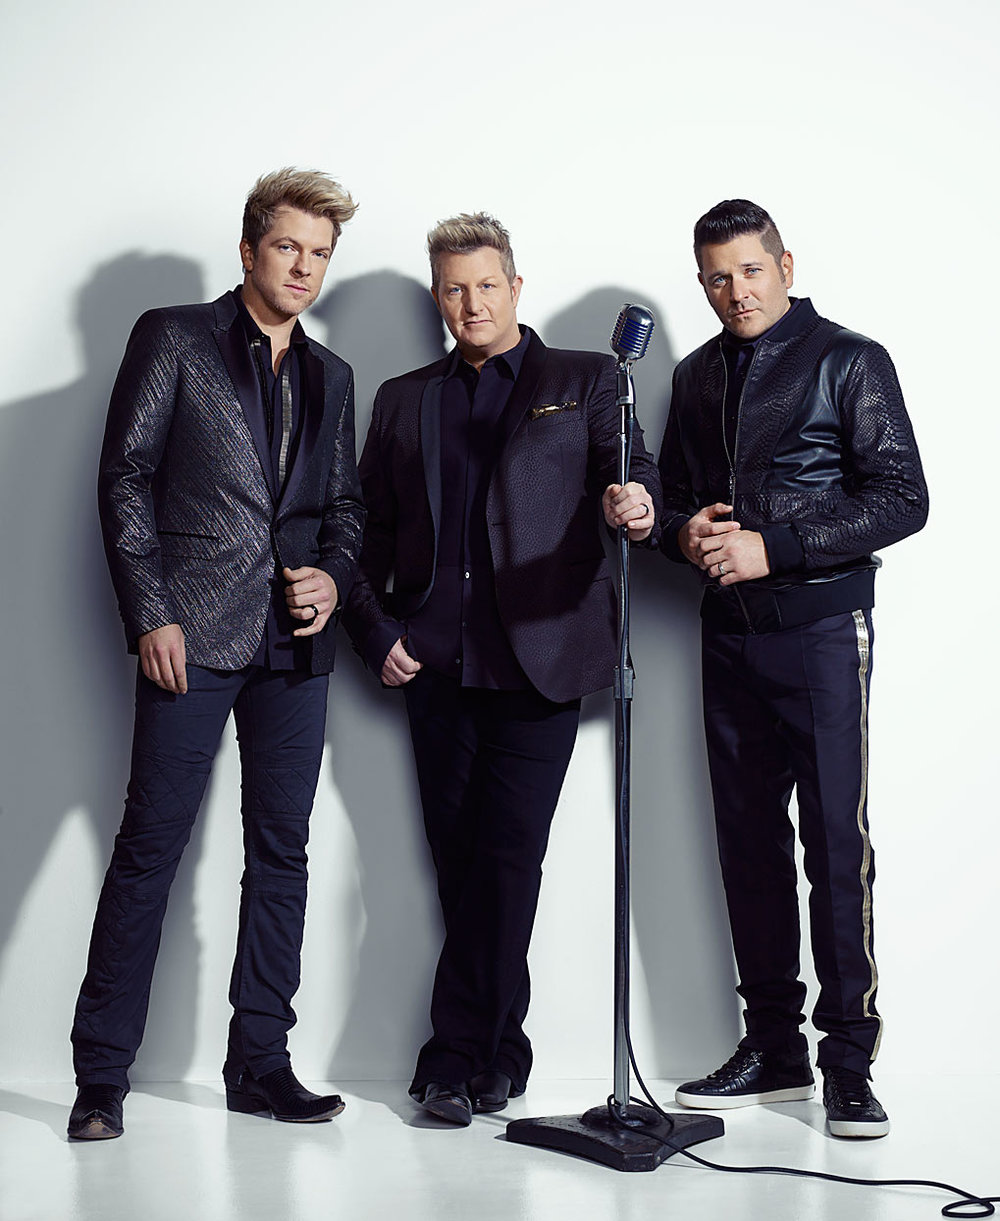 Mark DeLong - Celebrity Photographer - 3 Musicians in black suits standing together.